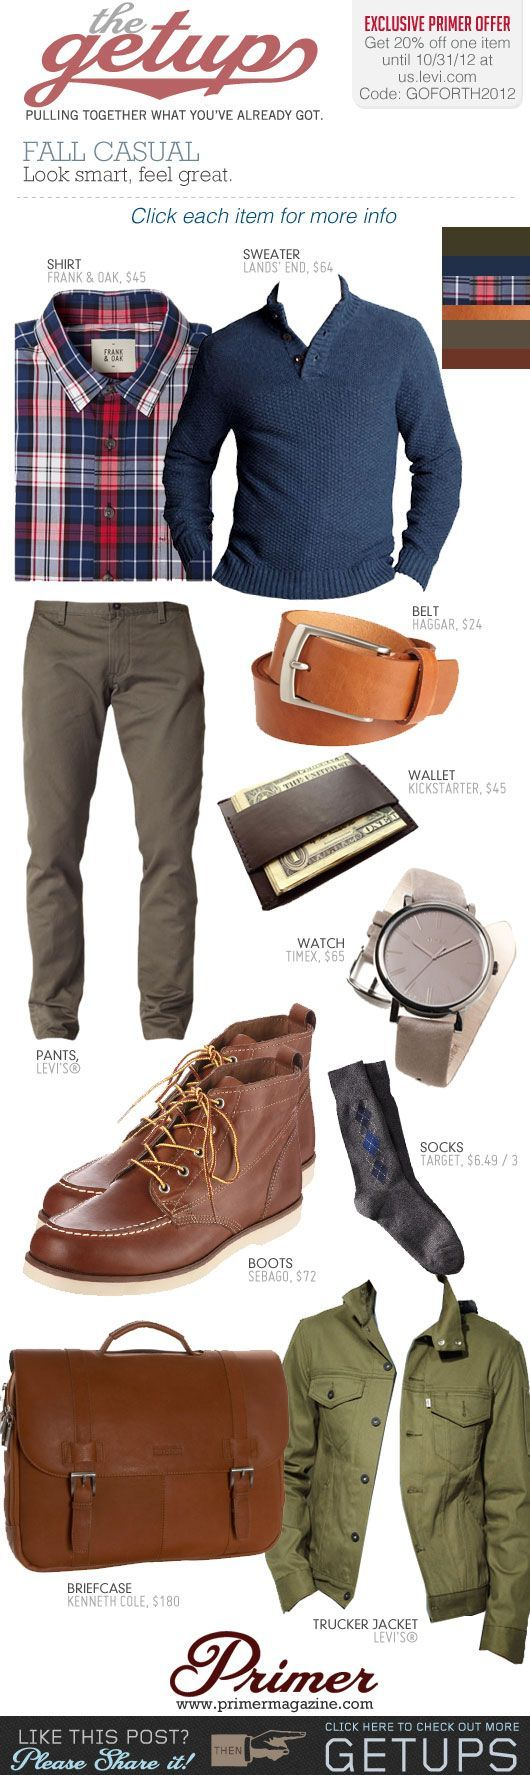 The Getup: Fall Casual | Primer: